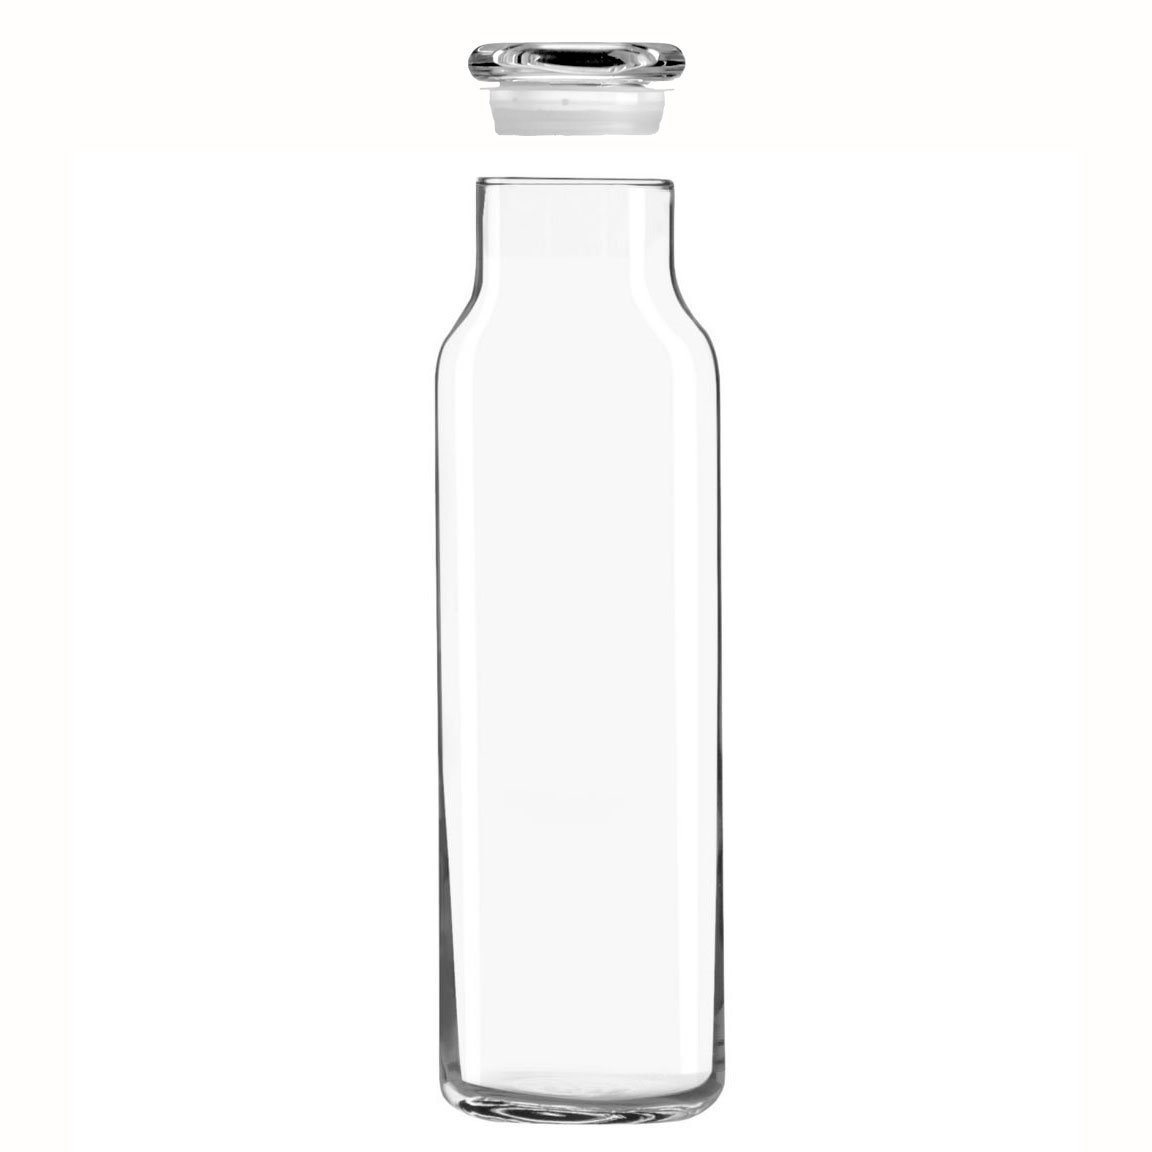 Libbey Glass 24 Oz. Hydration Decanter Carafe Bottle w/ Lid - Straight Cylinder 24ozdecanter 377